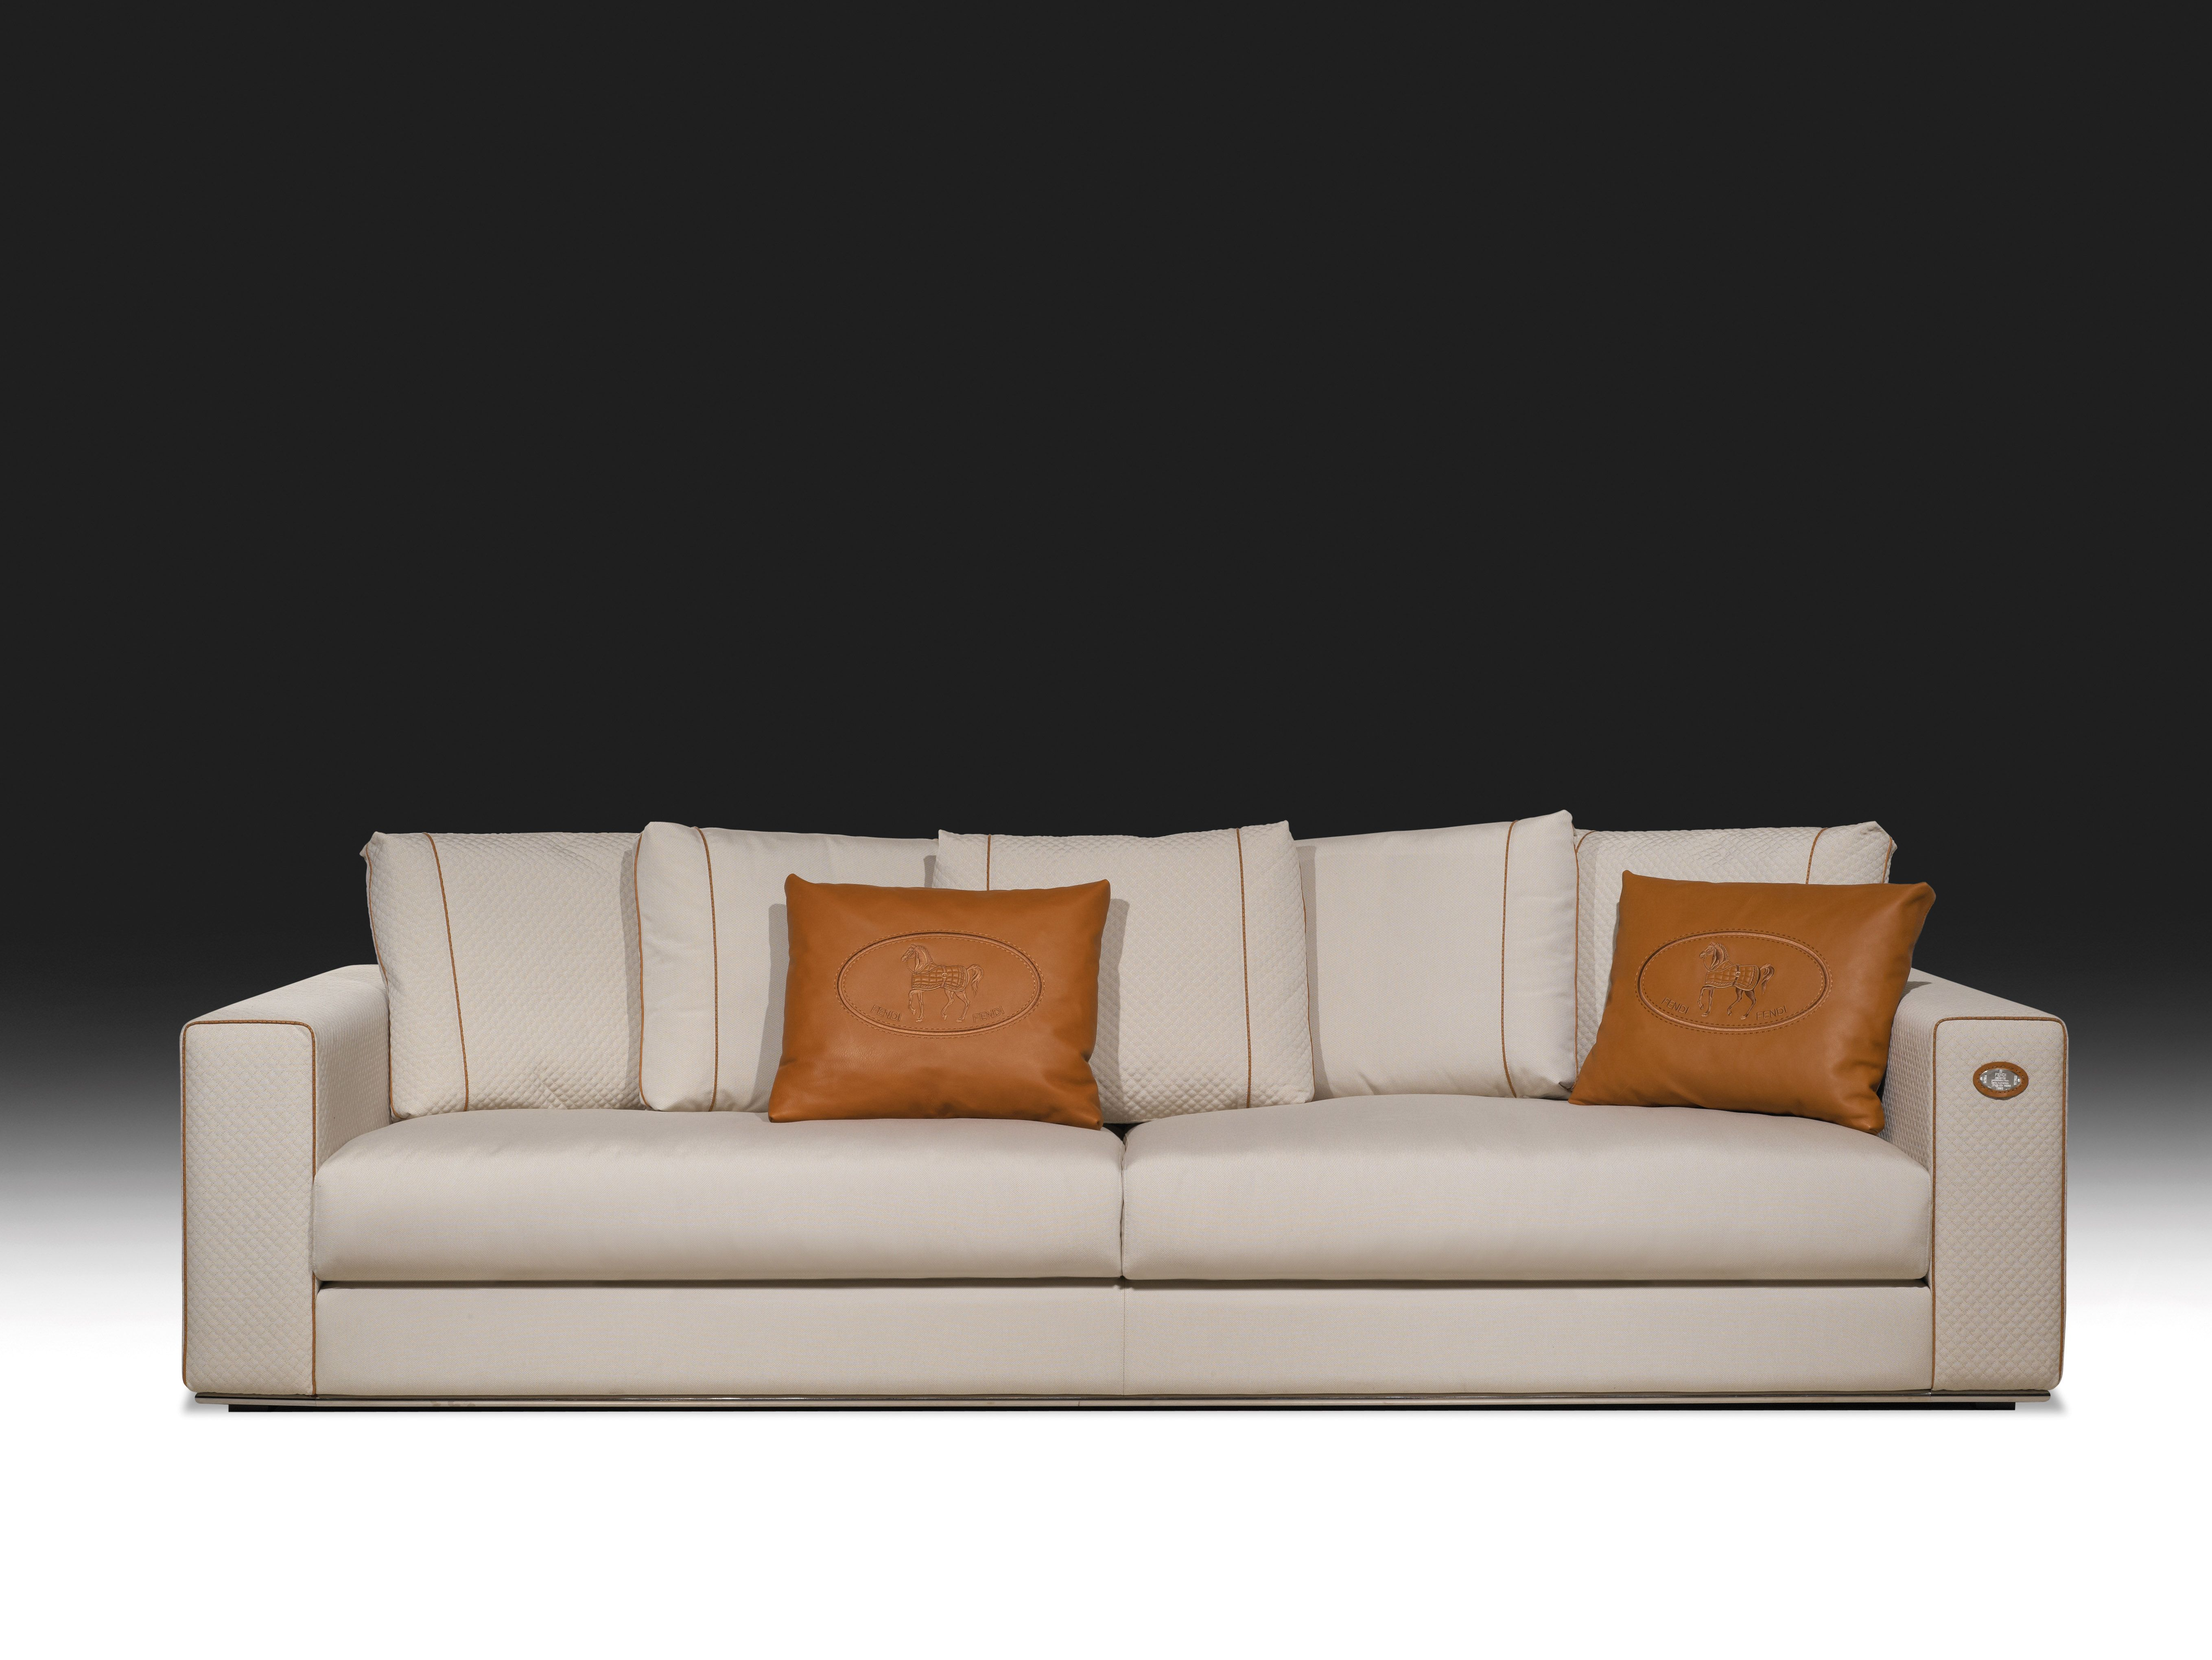 Charmant Fendi Sofa   Google Search